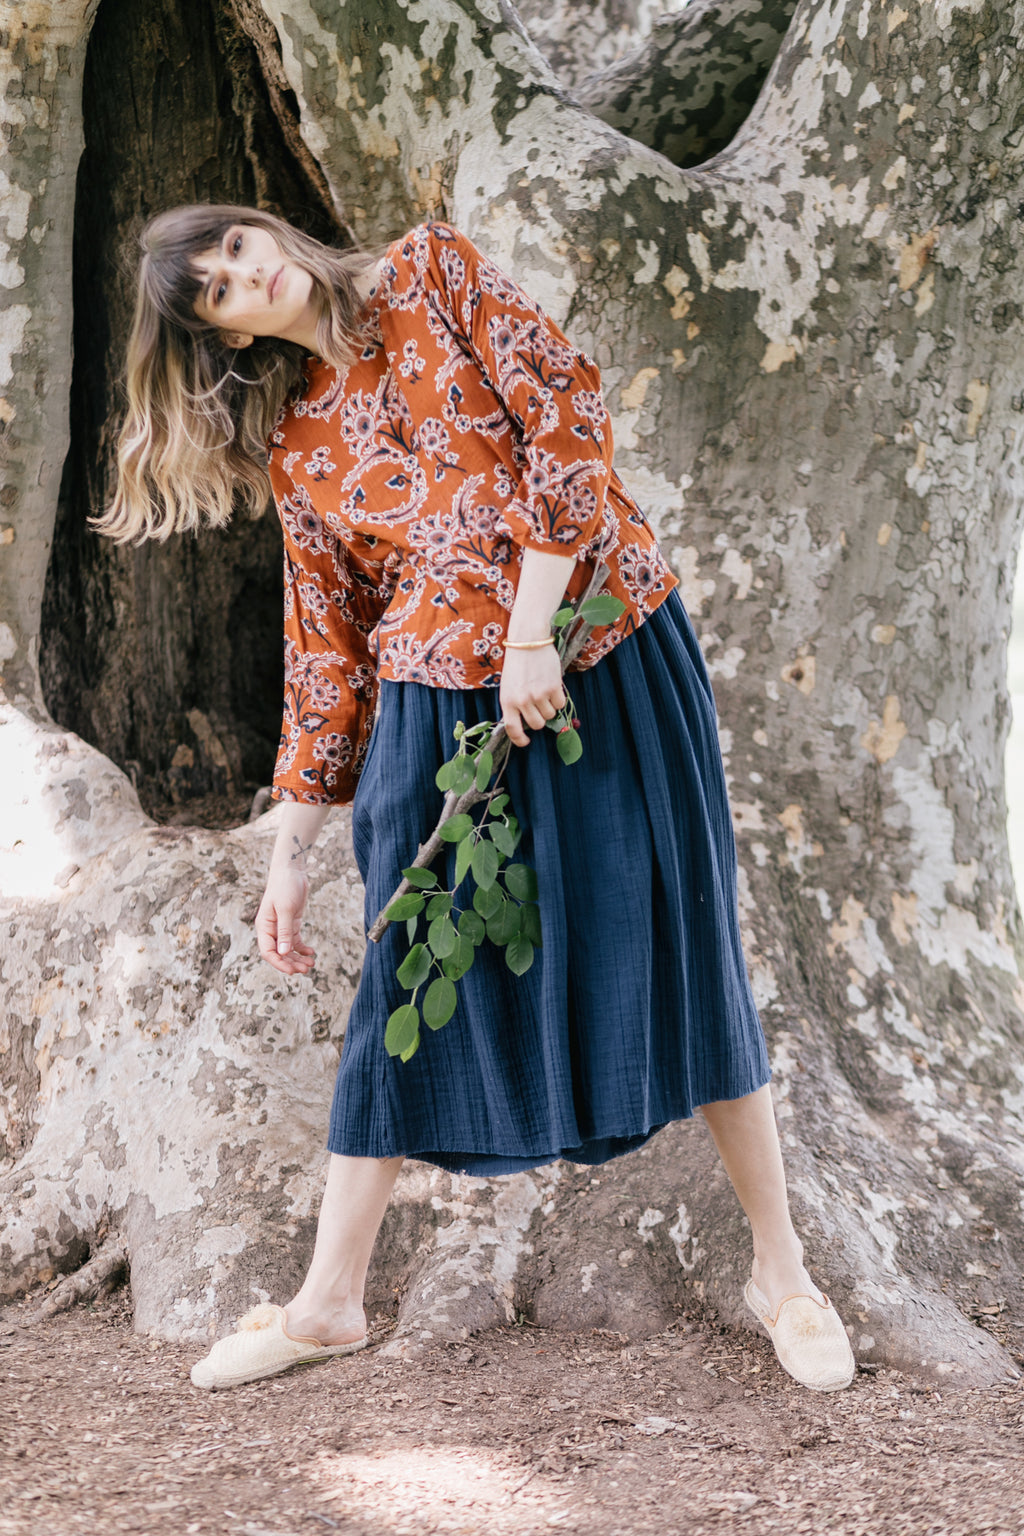 Model wearing an umber orange floral print top with a high low hem and cotton rolled sleeves paired with wide legged blue palazzo pants.